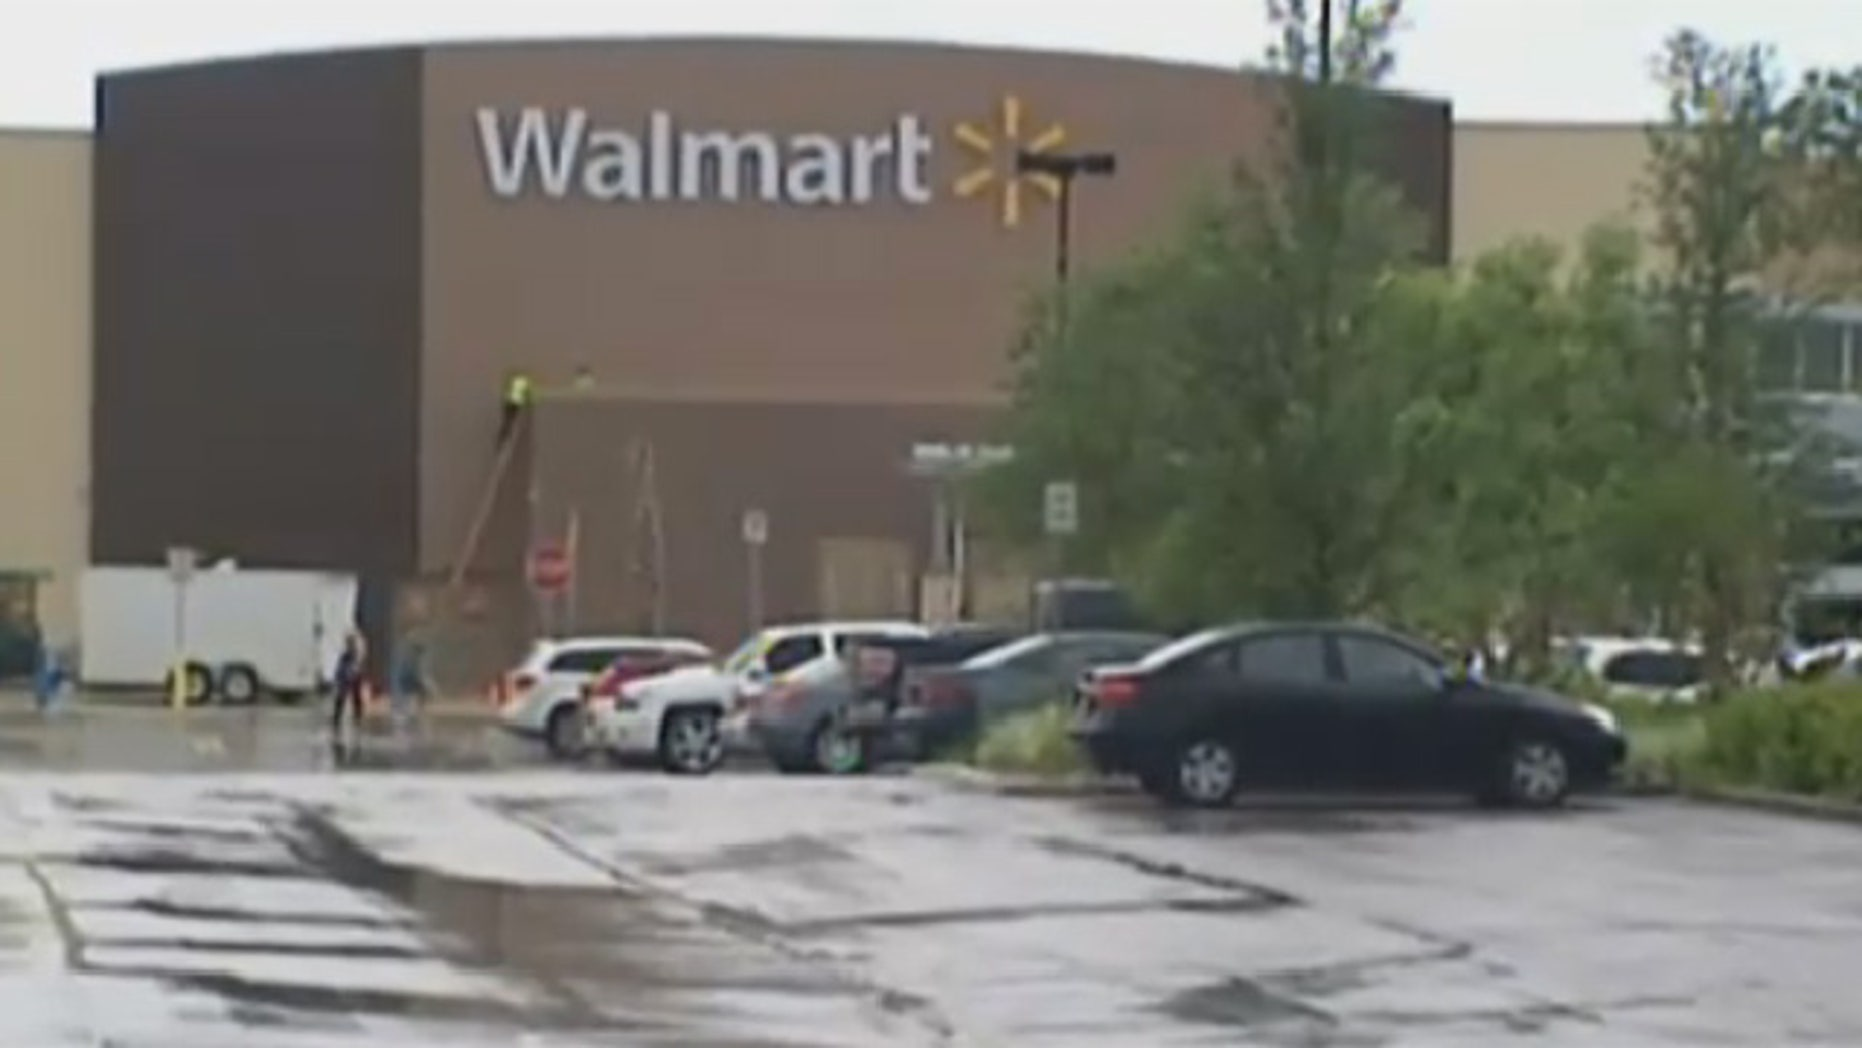 WalMart apologized after not allowing students to perform in store.